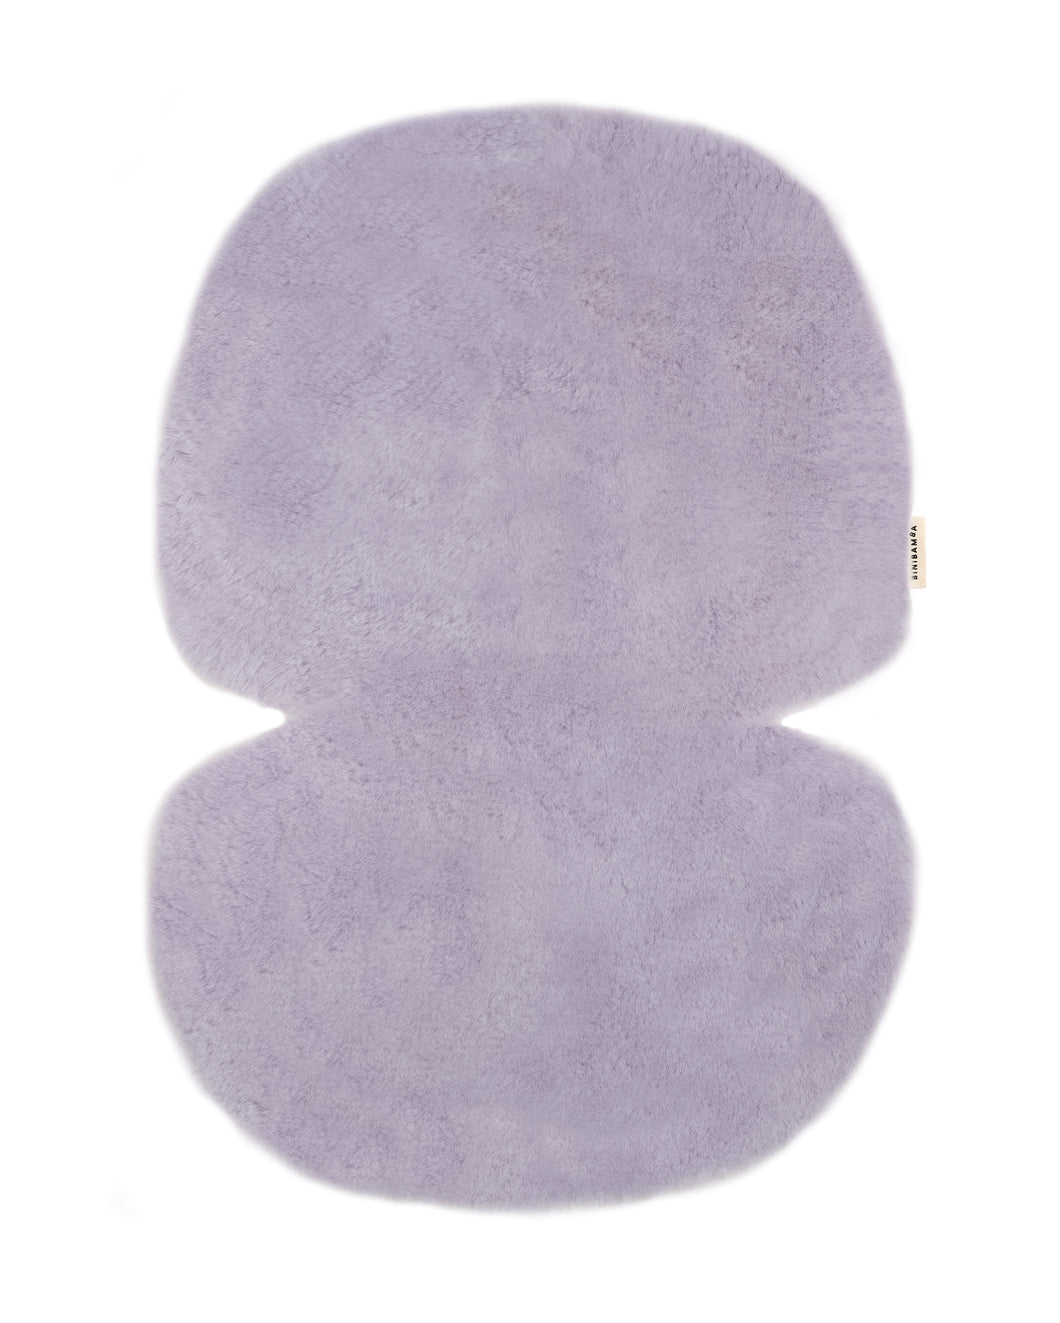 PARMAVIOLET SNUGGLER - LIMITED EDITION